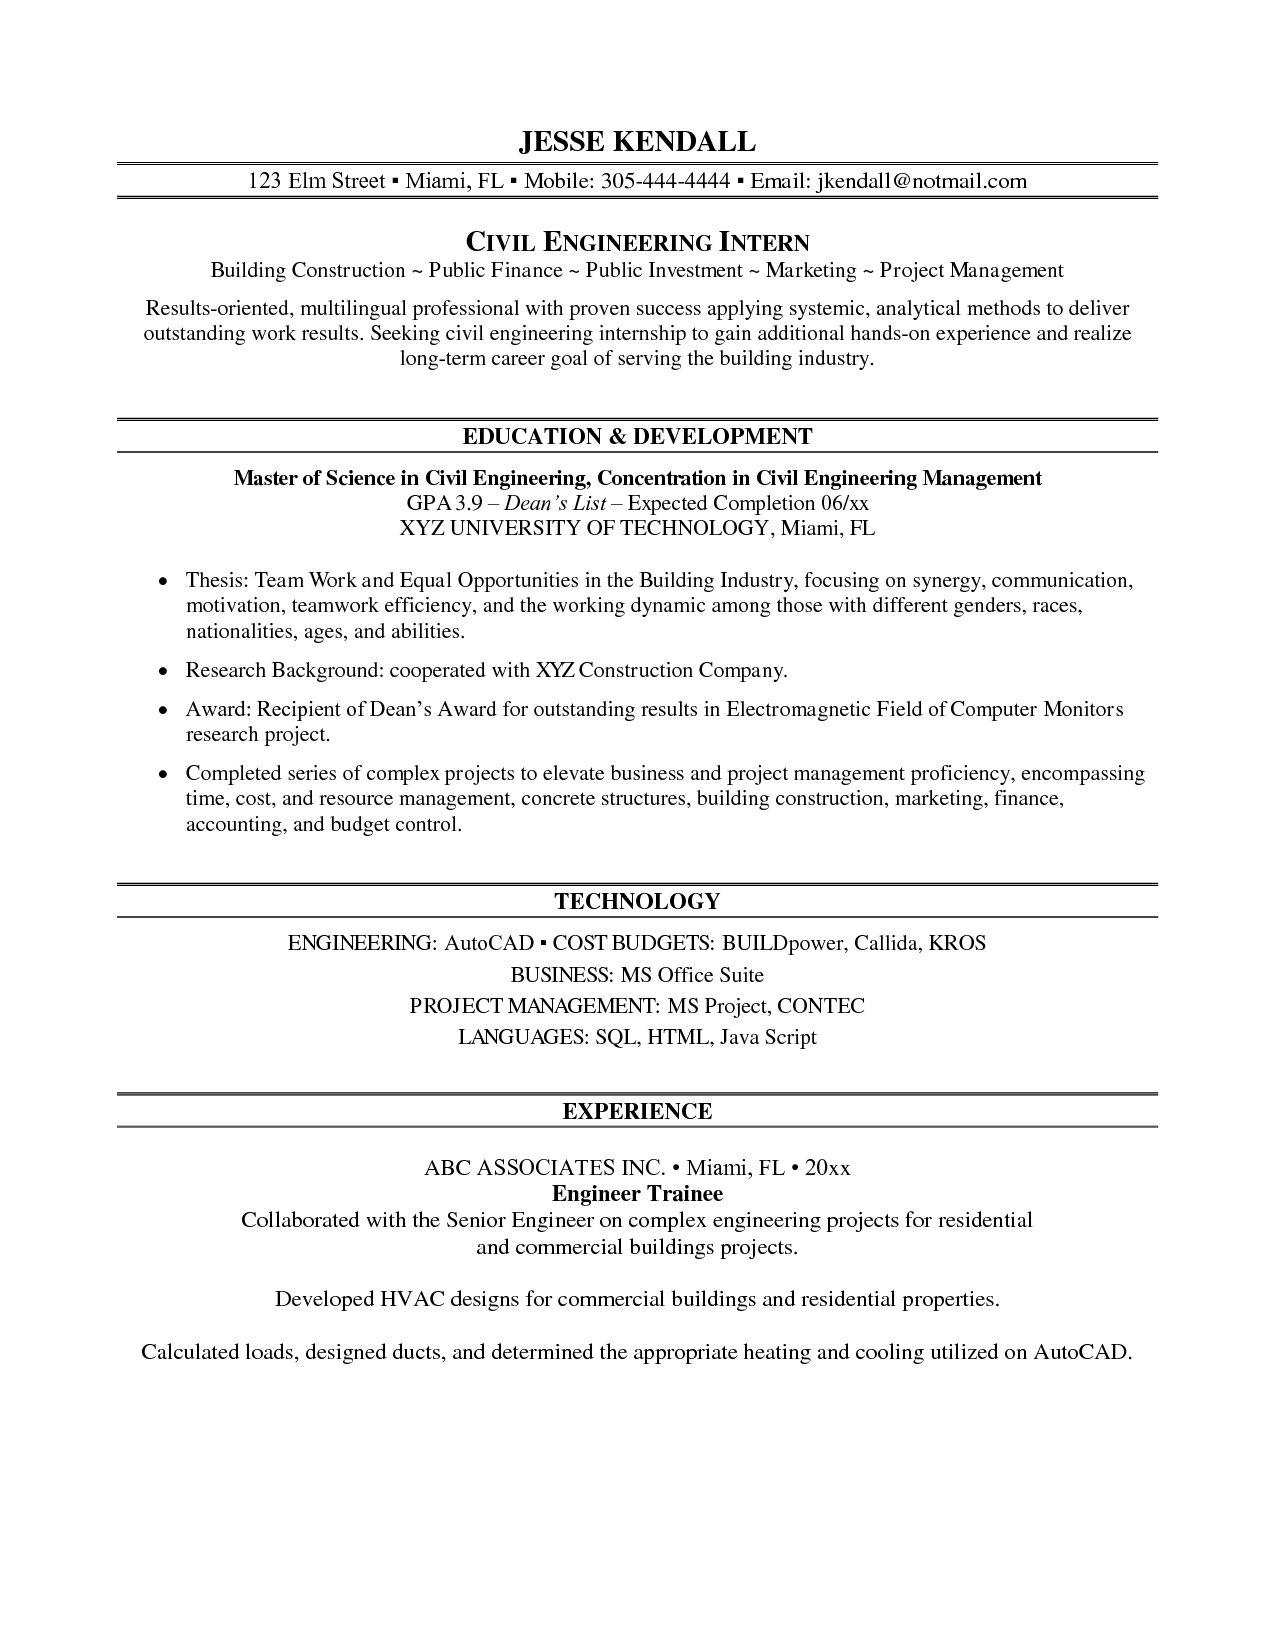 Resume Curriculum Vitae Example Internship internship on resume best template collection httpwww jobresume website